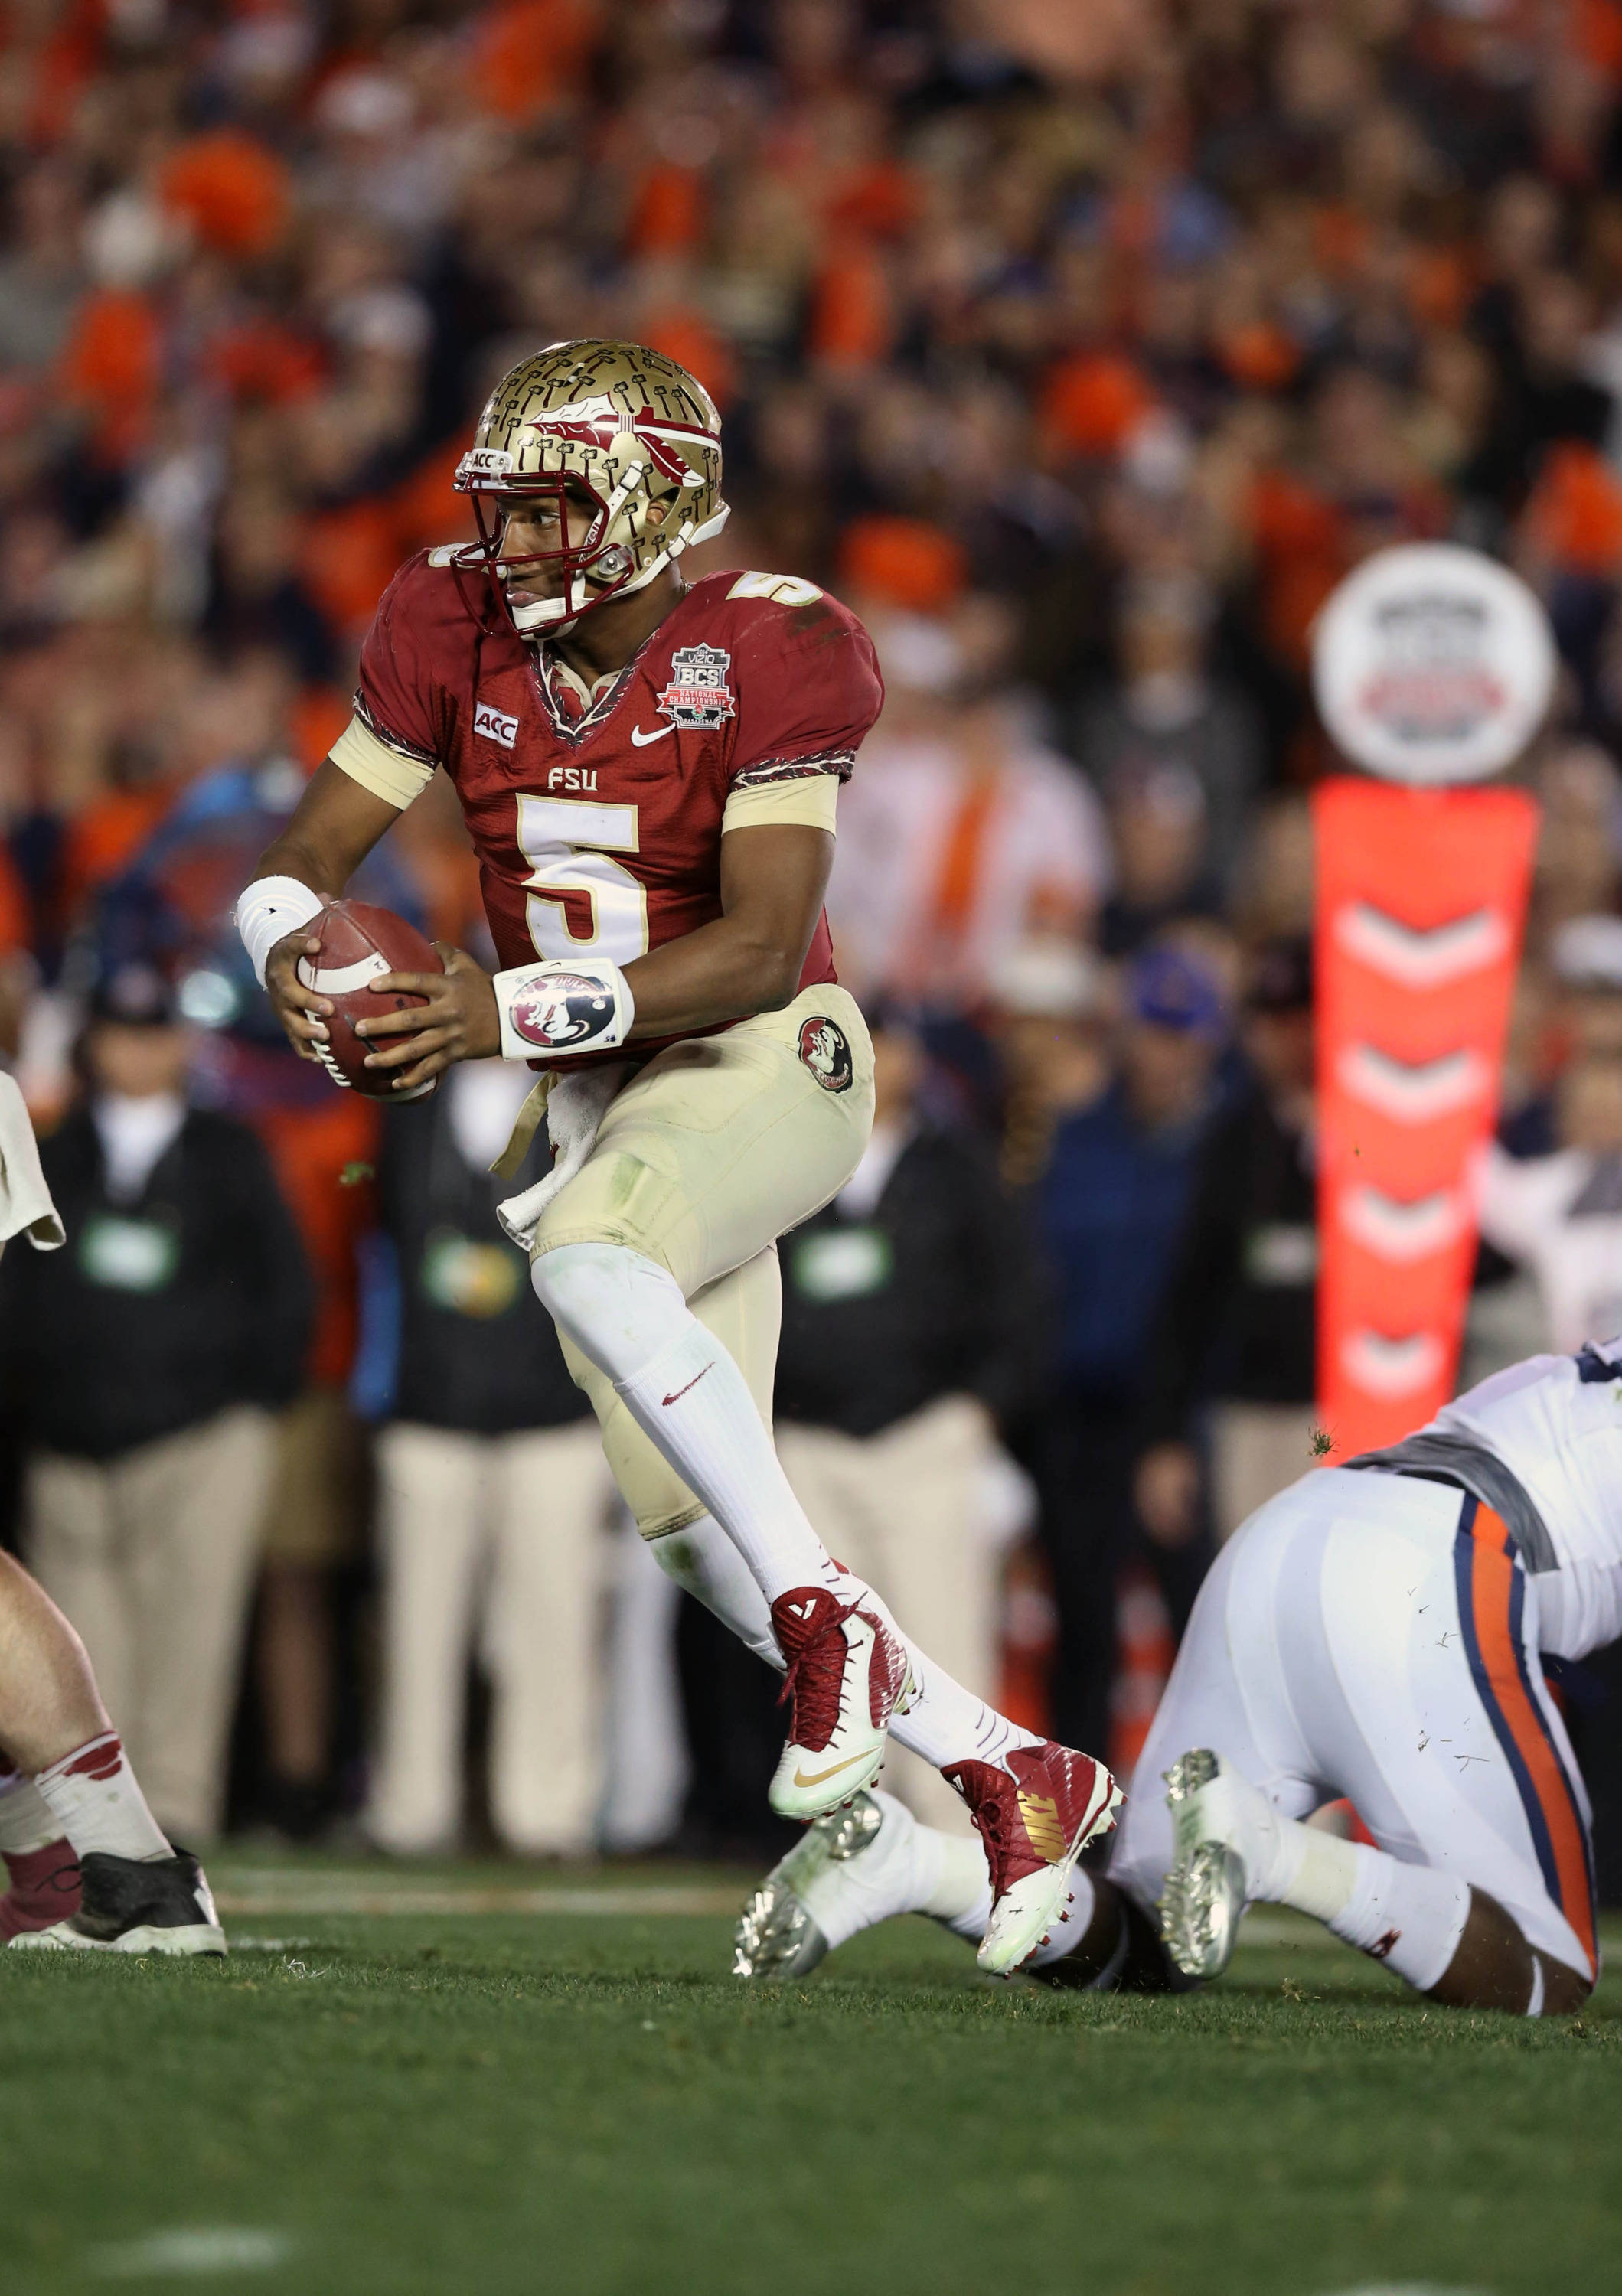 Jan 6, 2014; Pasadena, CA, USA; Florida State Seminoles quarterback Jameis Winston (5) carries the ball against the Auburn Tigers during the first half of the 2014 BCS National Championship game at the Rose Bowl.  Mandatory Credit: Matthew Emmons-USA TODAY Sports